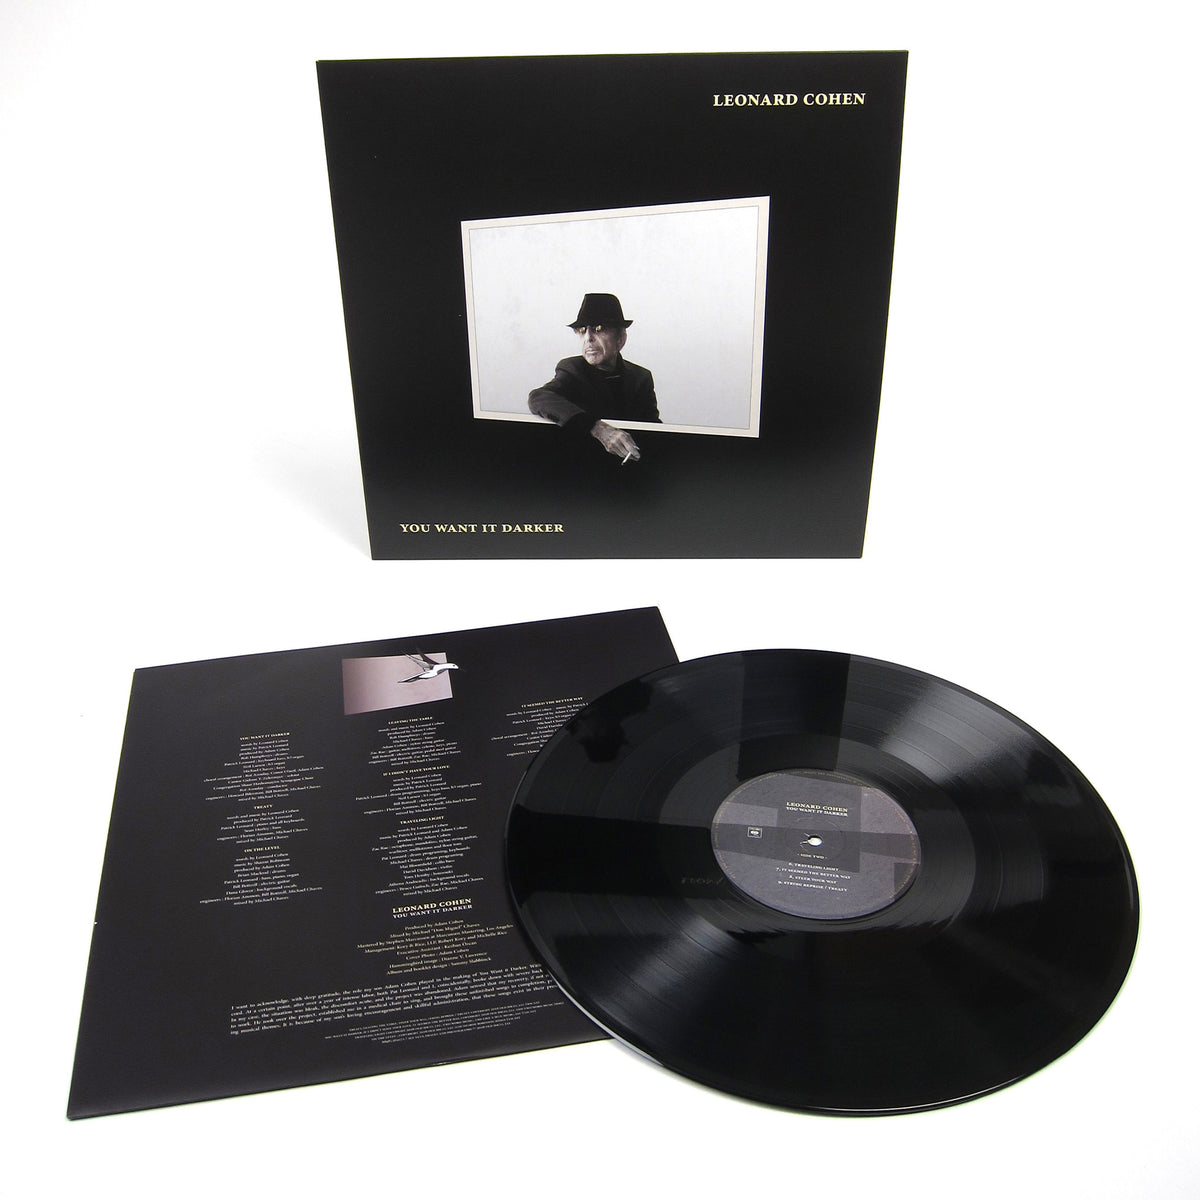 Leonard Cohen: You Want It Darker Vinyl LP